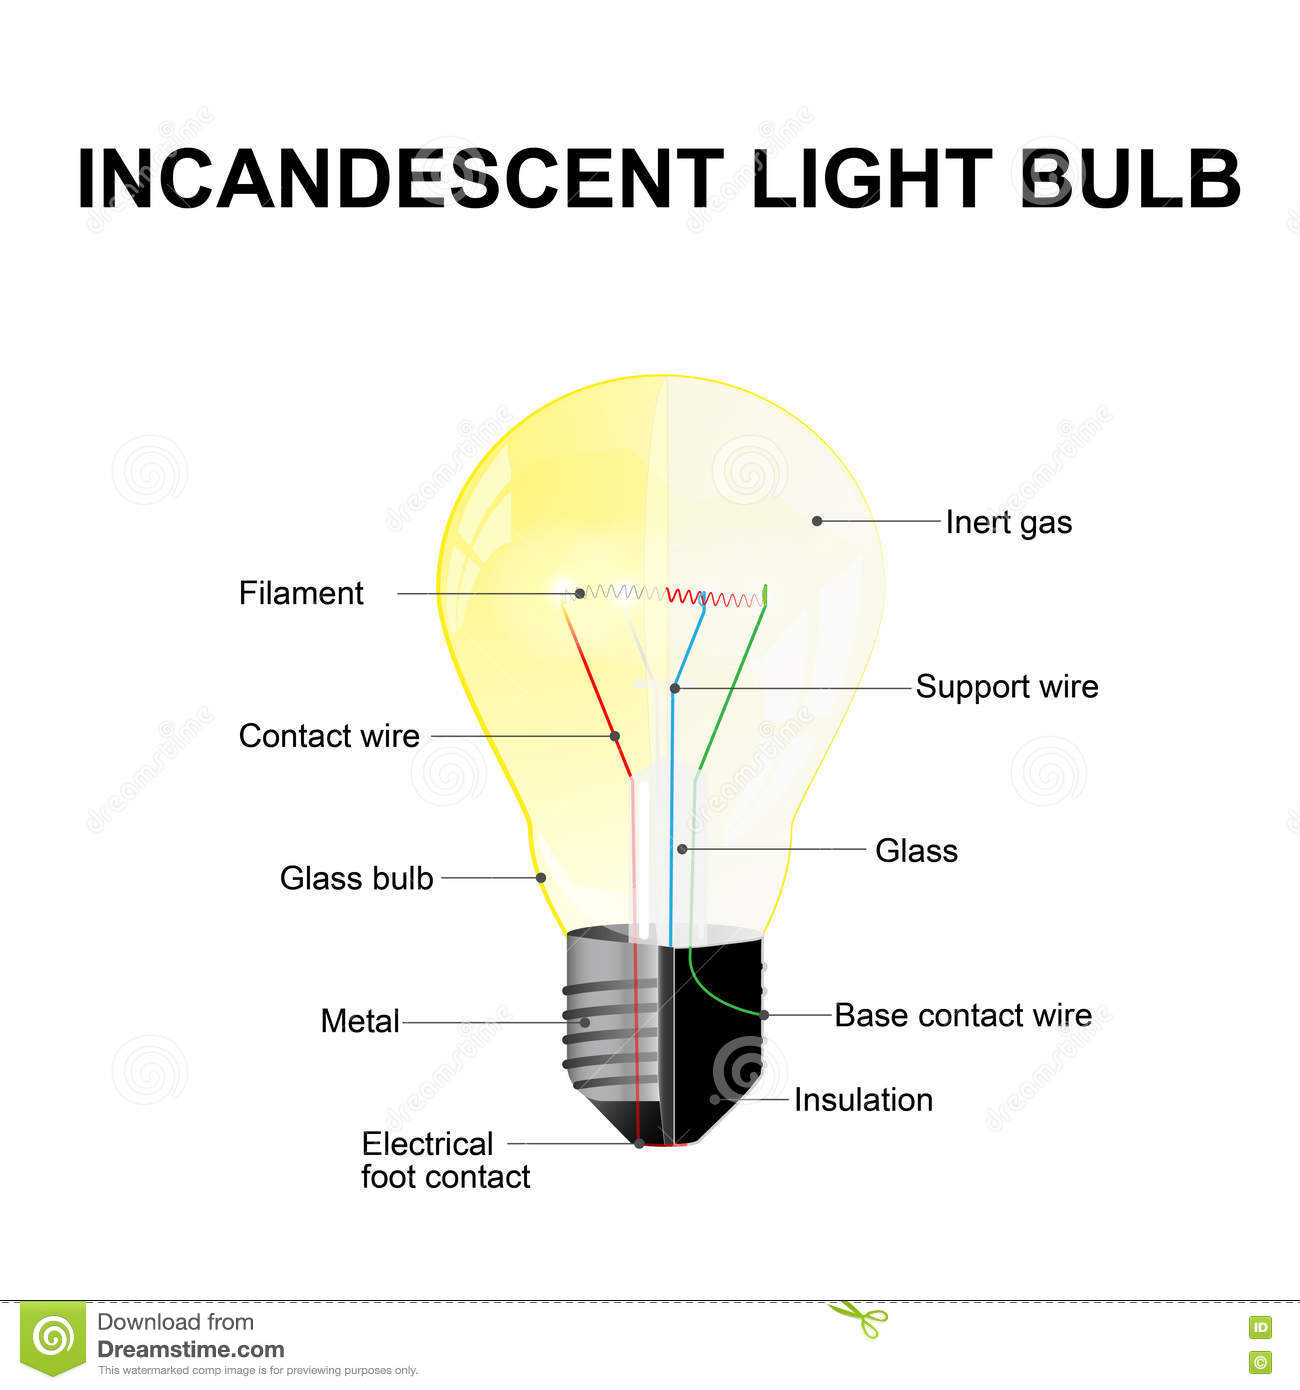 hight resolution of diagram showing the parts of a modern incandescent light bulb labeled